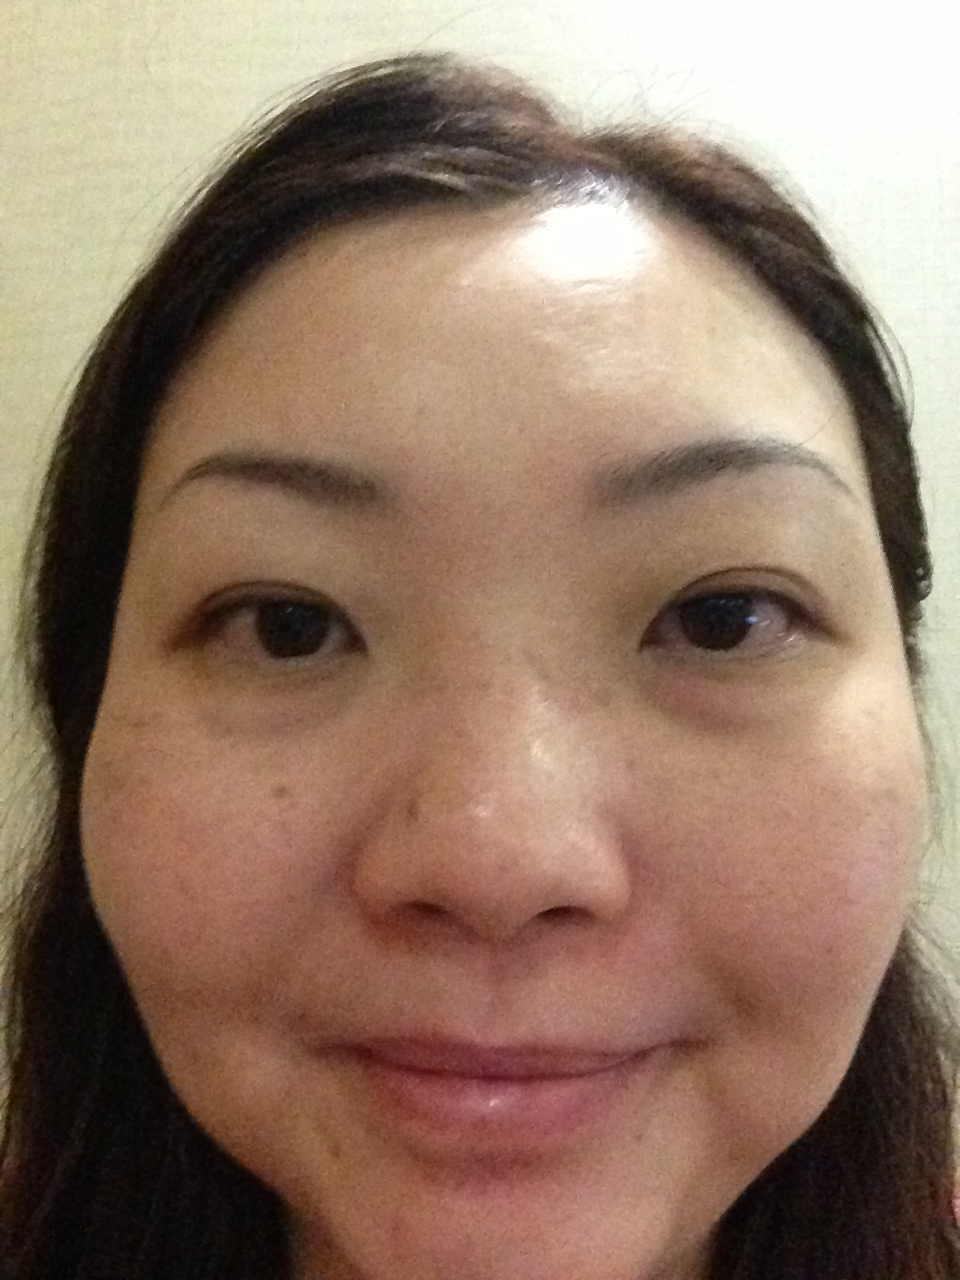 My face before the Mask. There is melasma on the right and left cheek